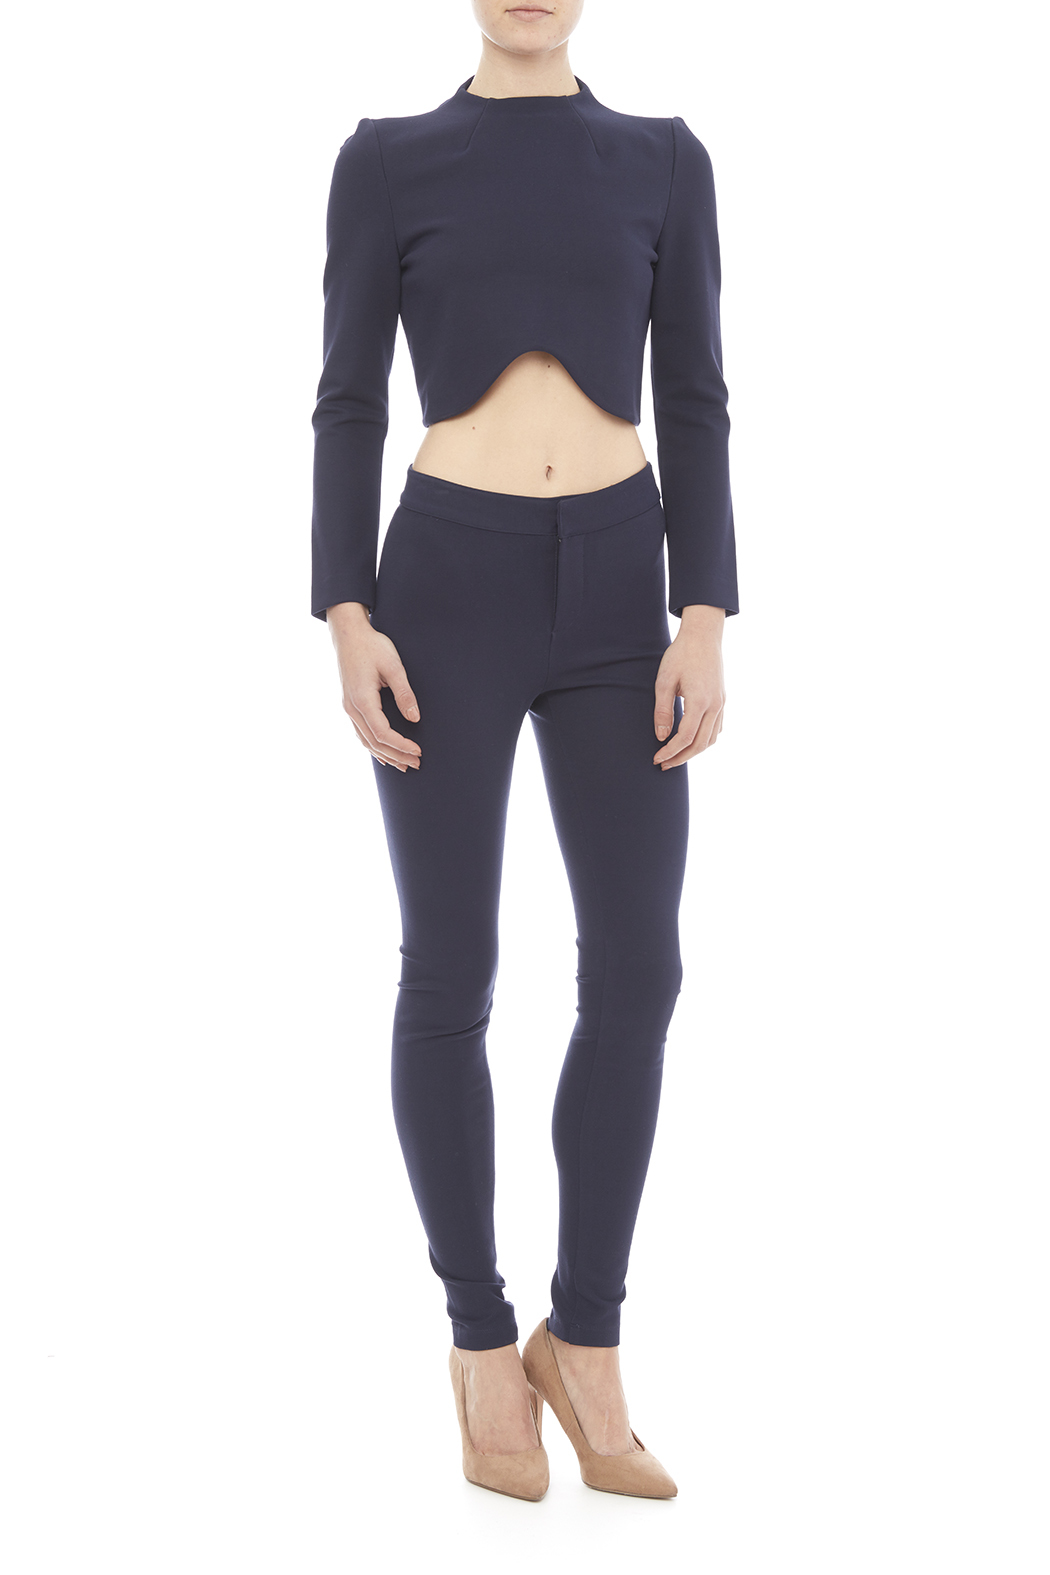 Blaque Label Kinit Navy Pants - Front Full Image